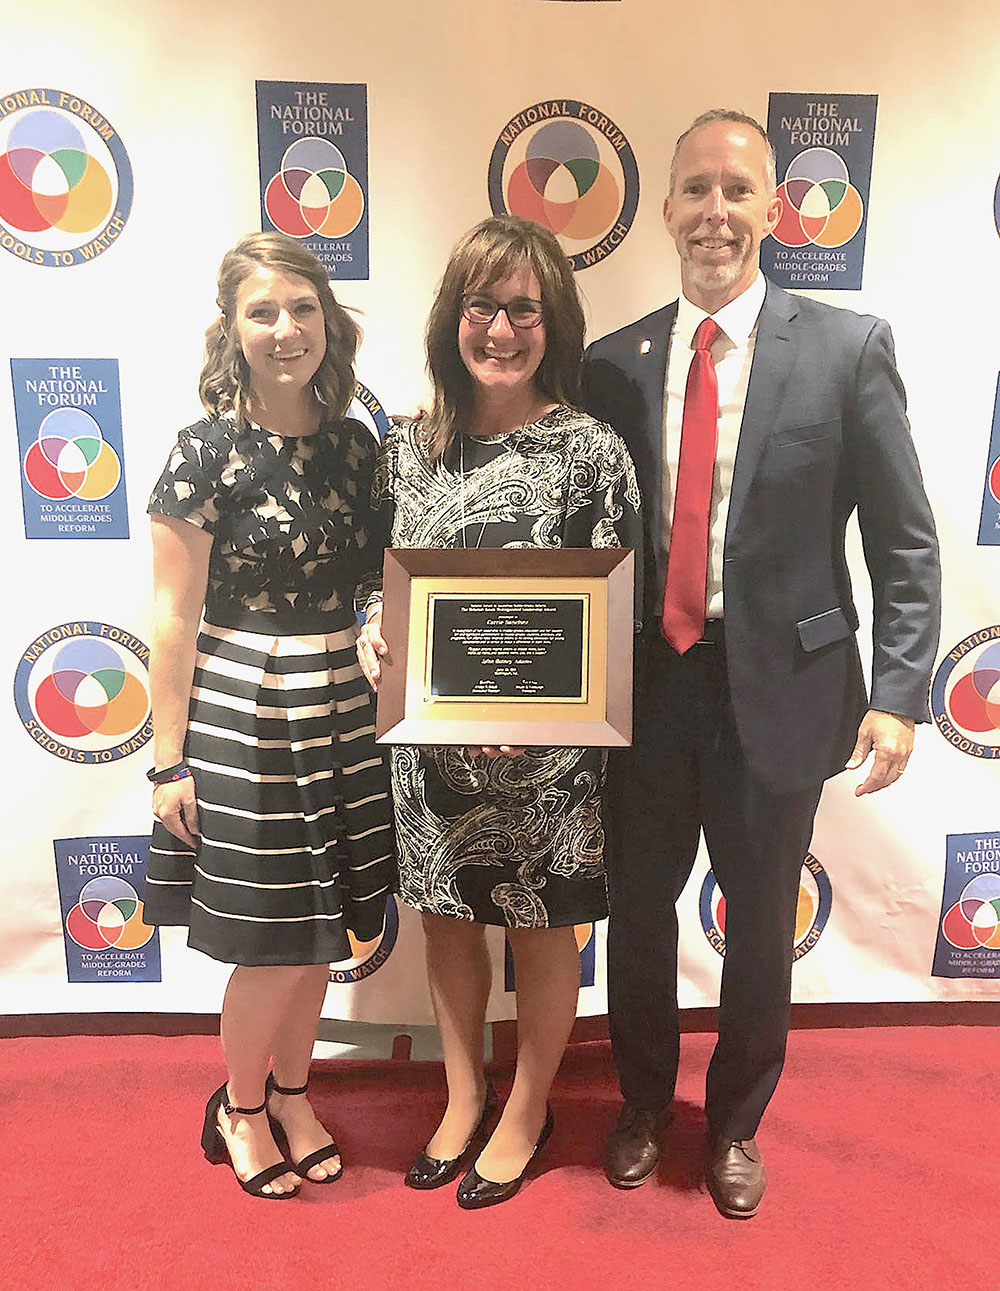 Principal Carrie Sanchez honored in Washington DC with Leadership Award